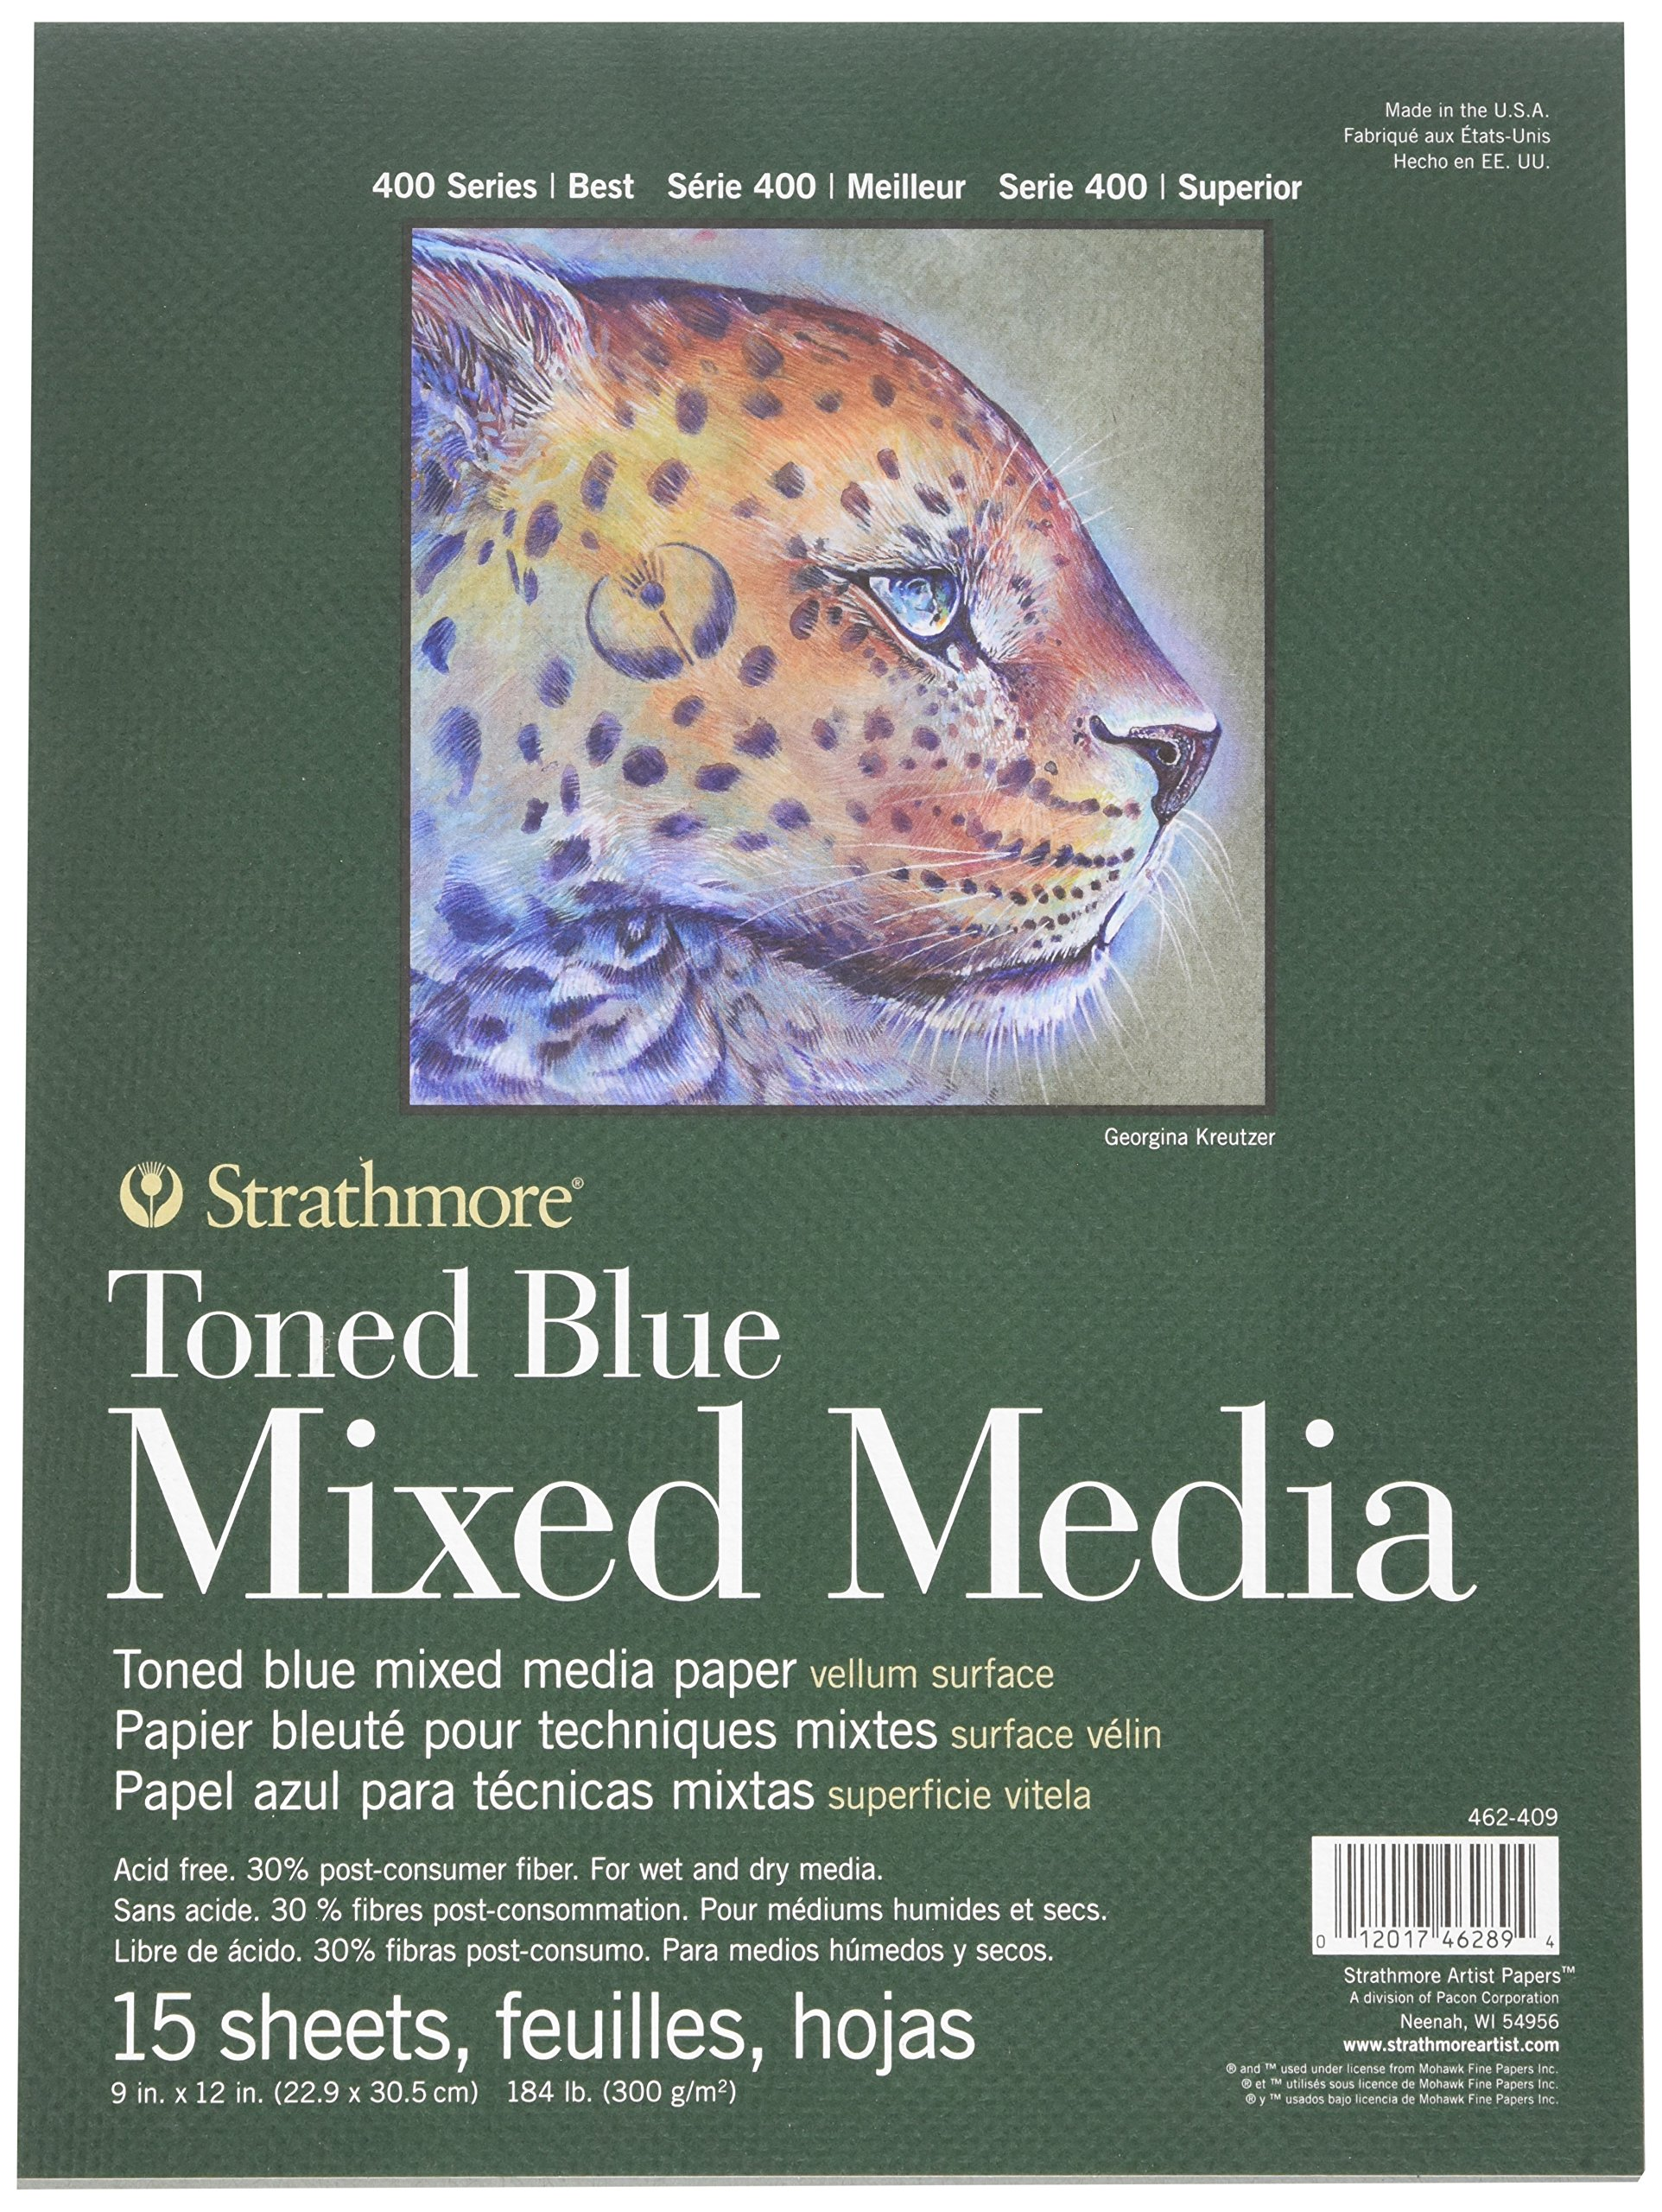 400 Series Toned Blue Mixed Media Pad, 9''x12'' Glue Bound, 15 Sheets per Pad by Strathmore